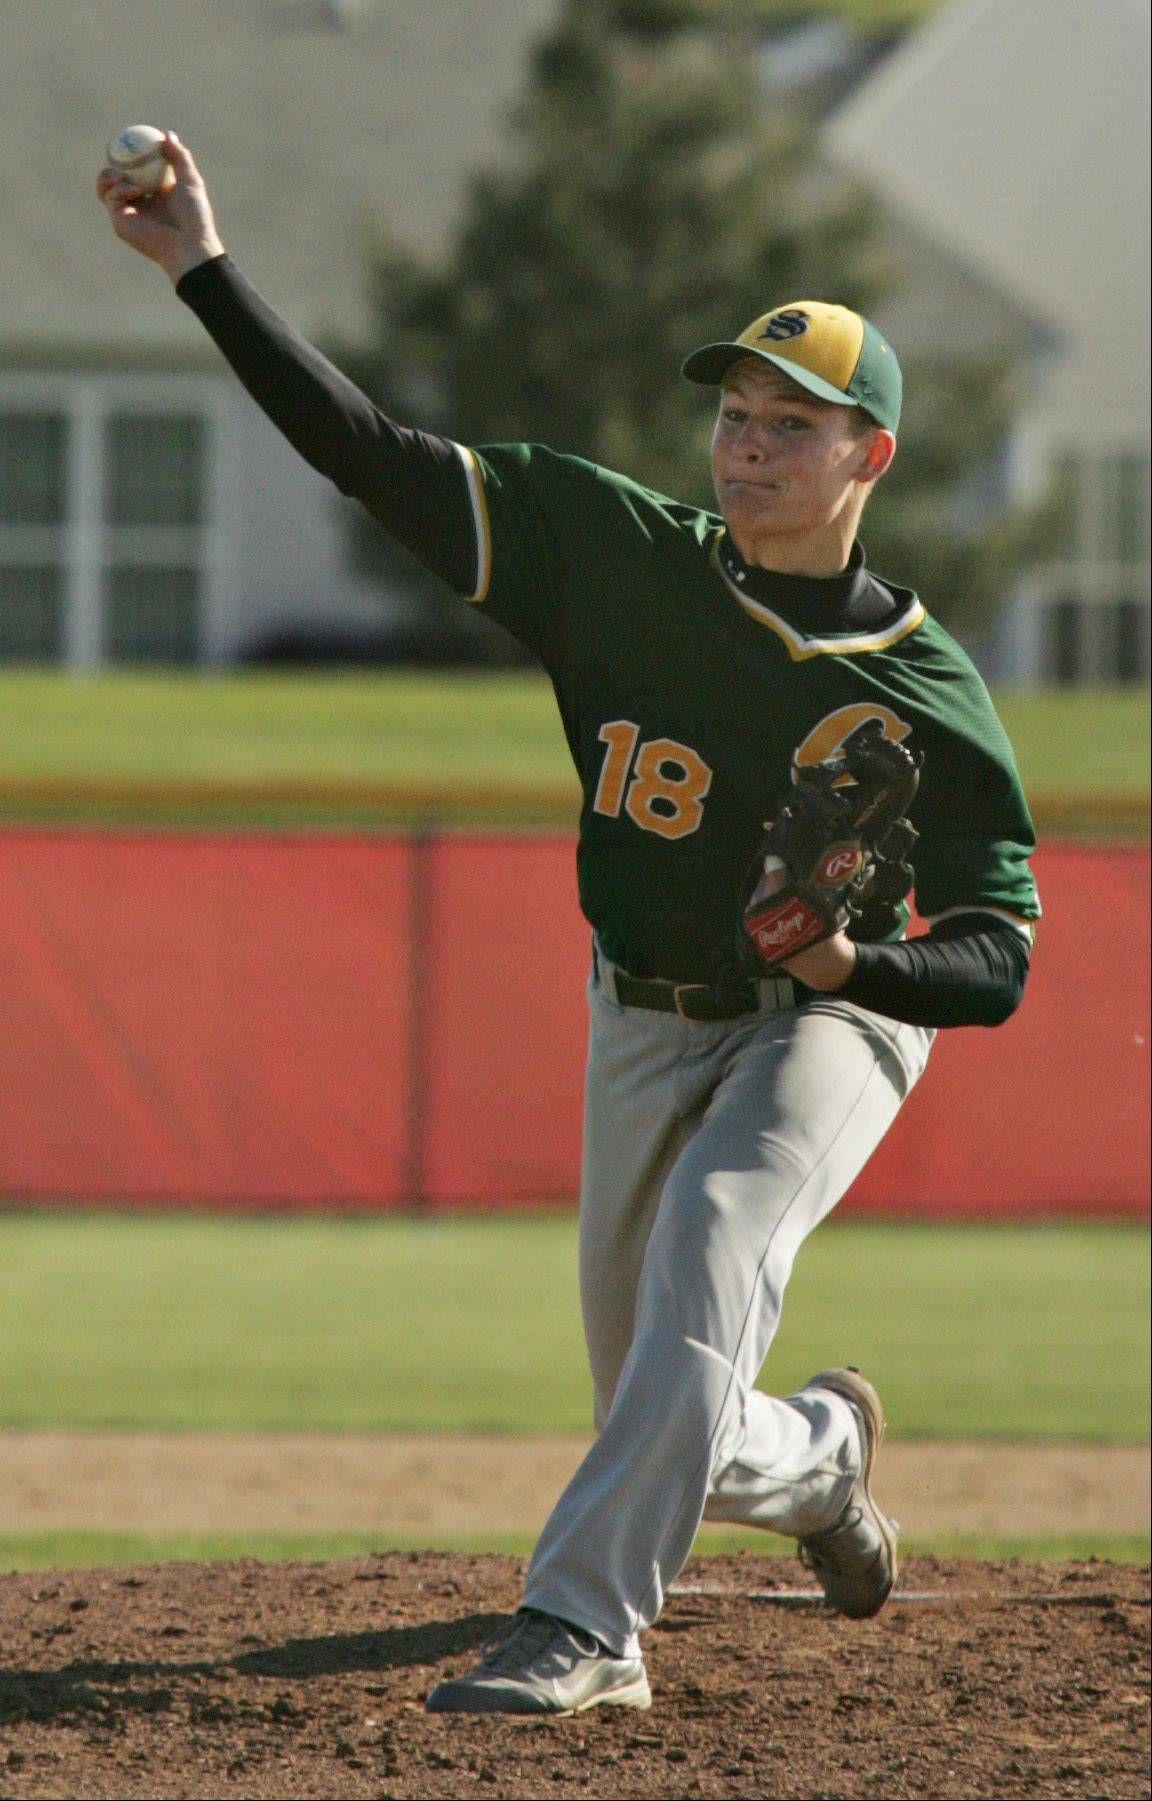 Crystal Lake South pitcher Jordan Van Dyck.